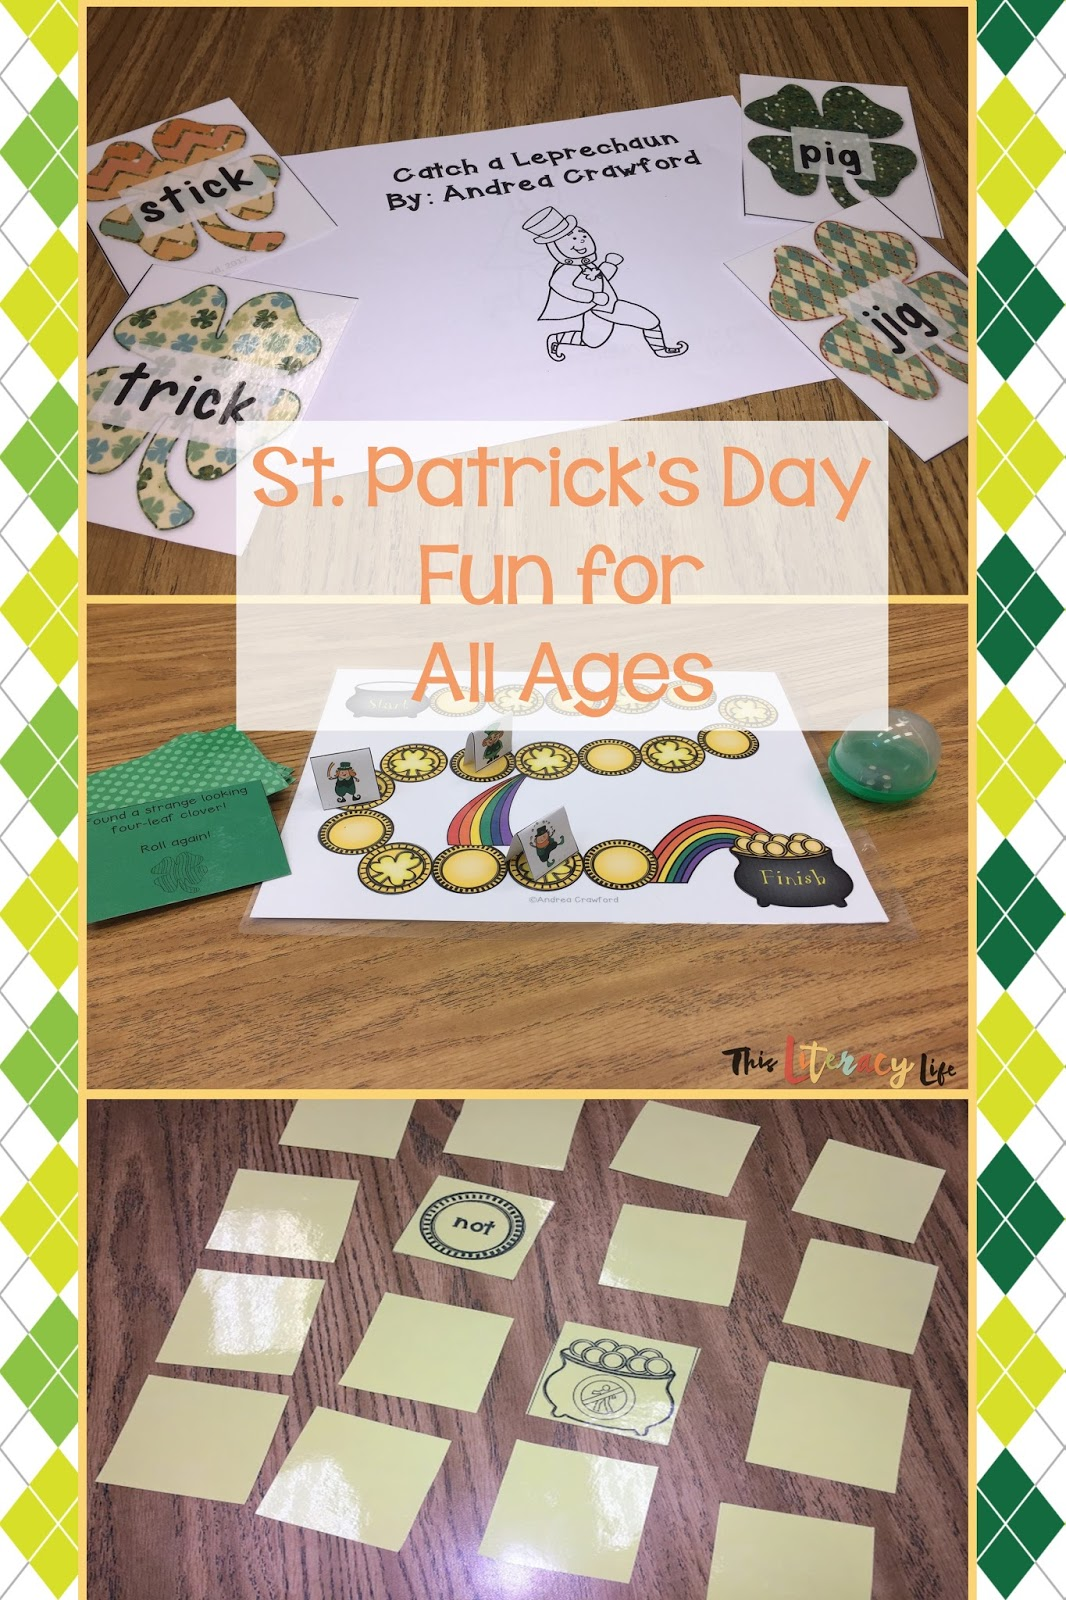 St. Patrick's Day can be fun for all ages! Use these fun and engaging literacy games, books, and activities to get your students smiling with the leprechauns!